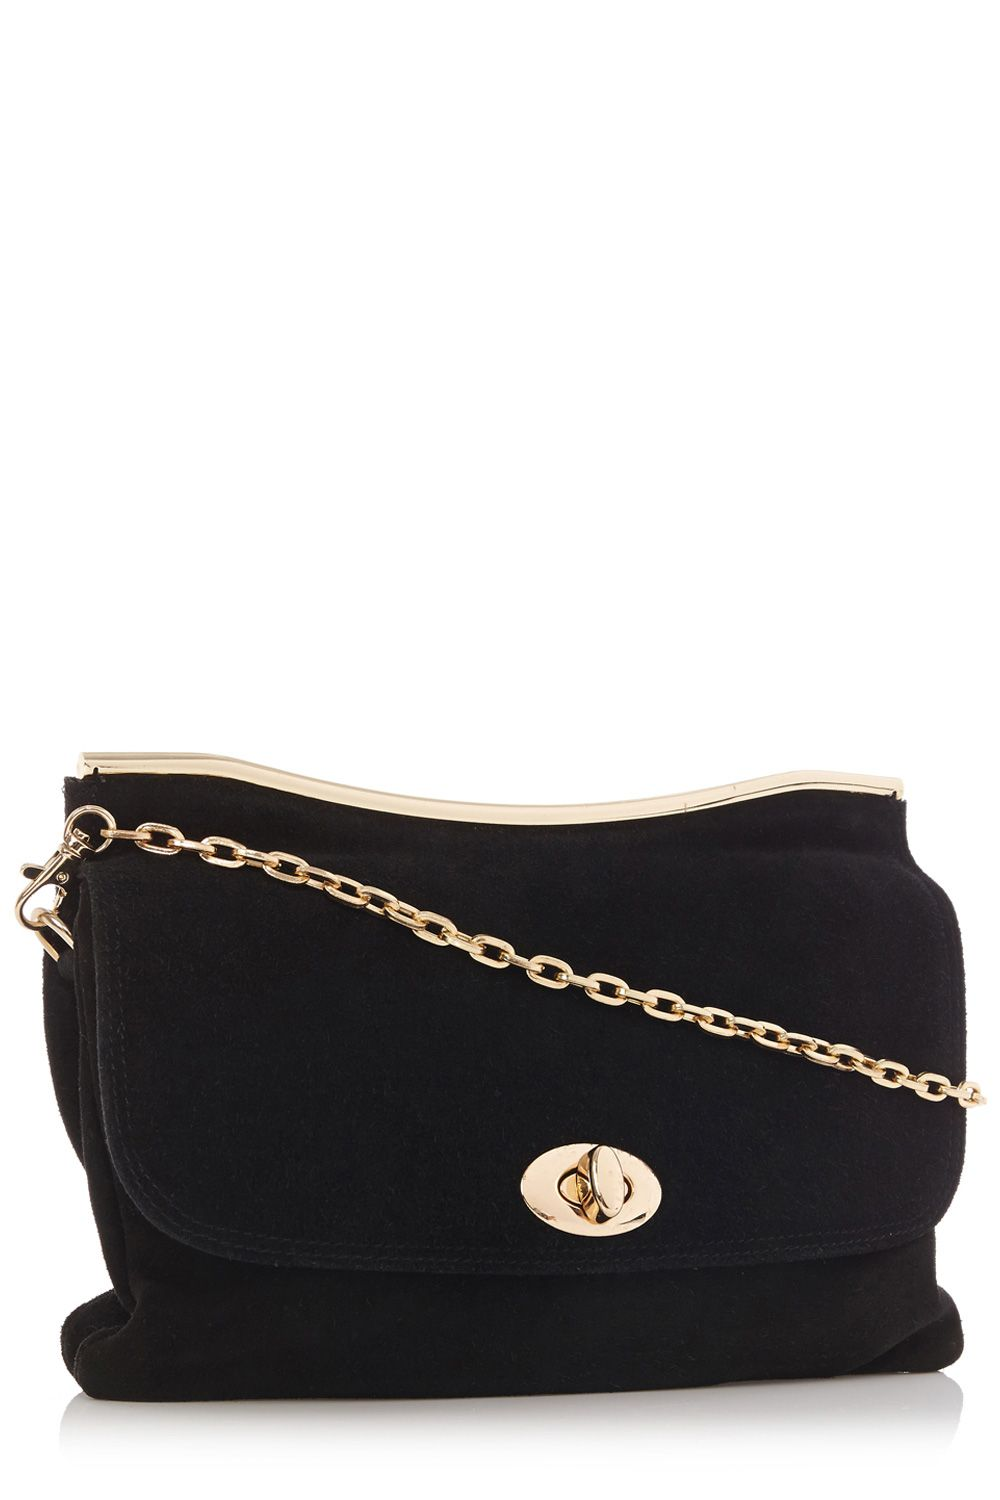 Caitlin leather bar clutch bag